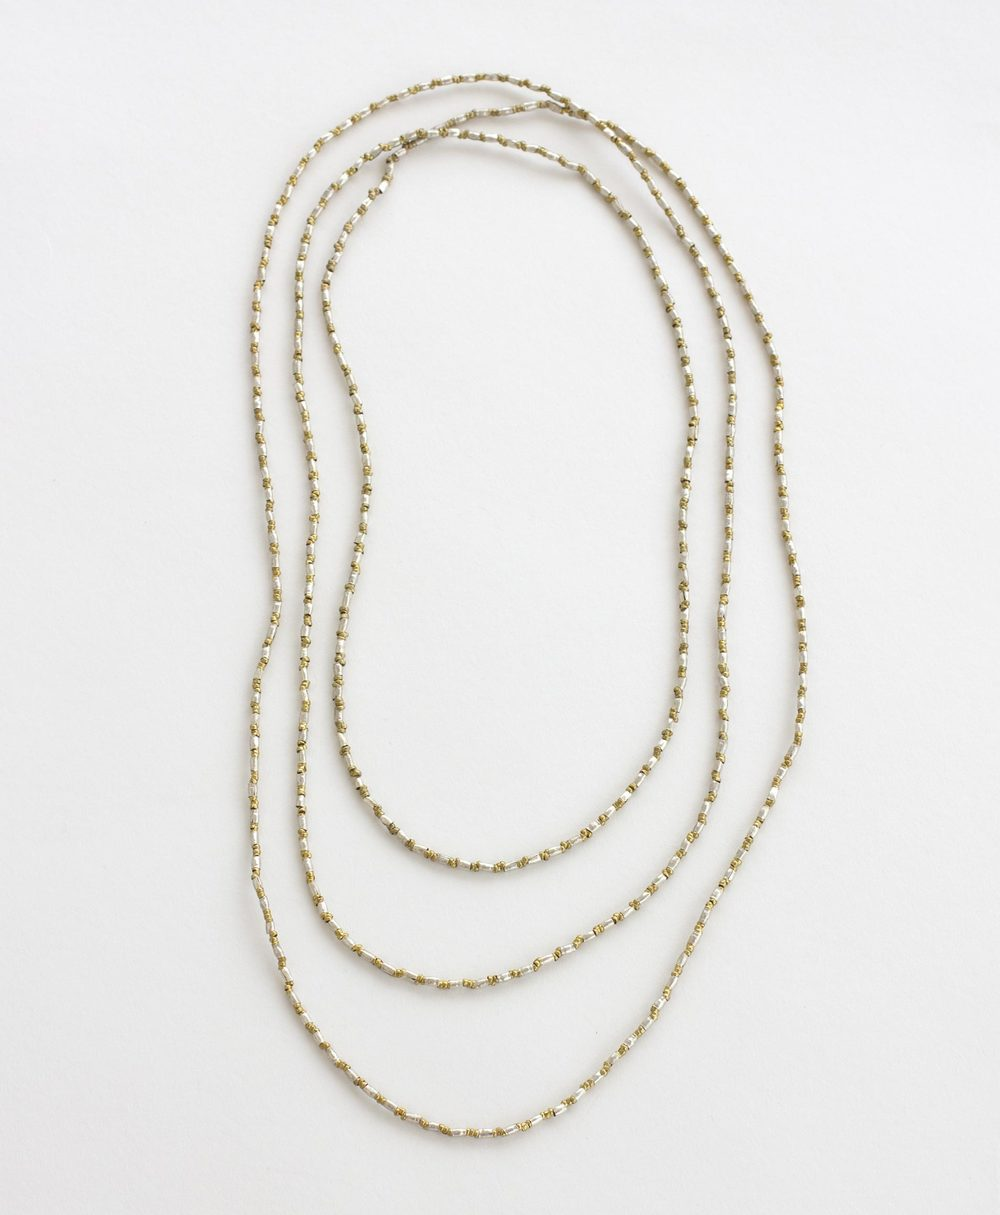 Bethe rope necklace.  Made in Ethiopia.